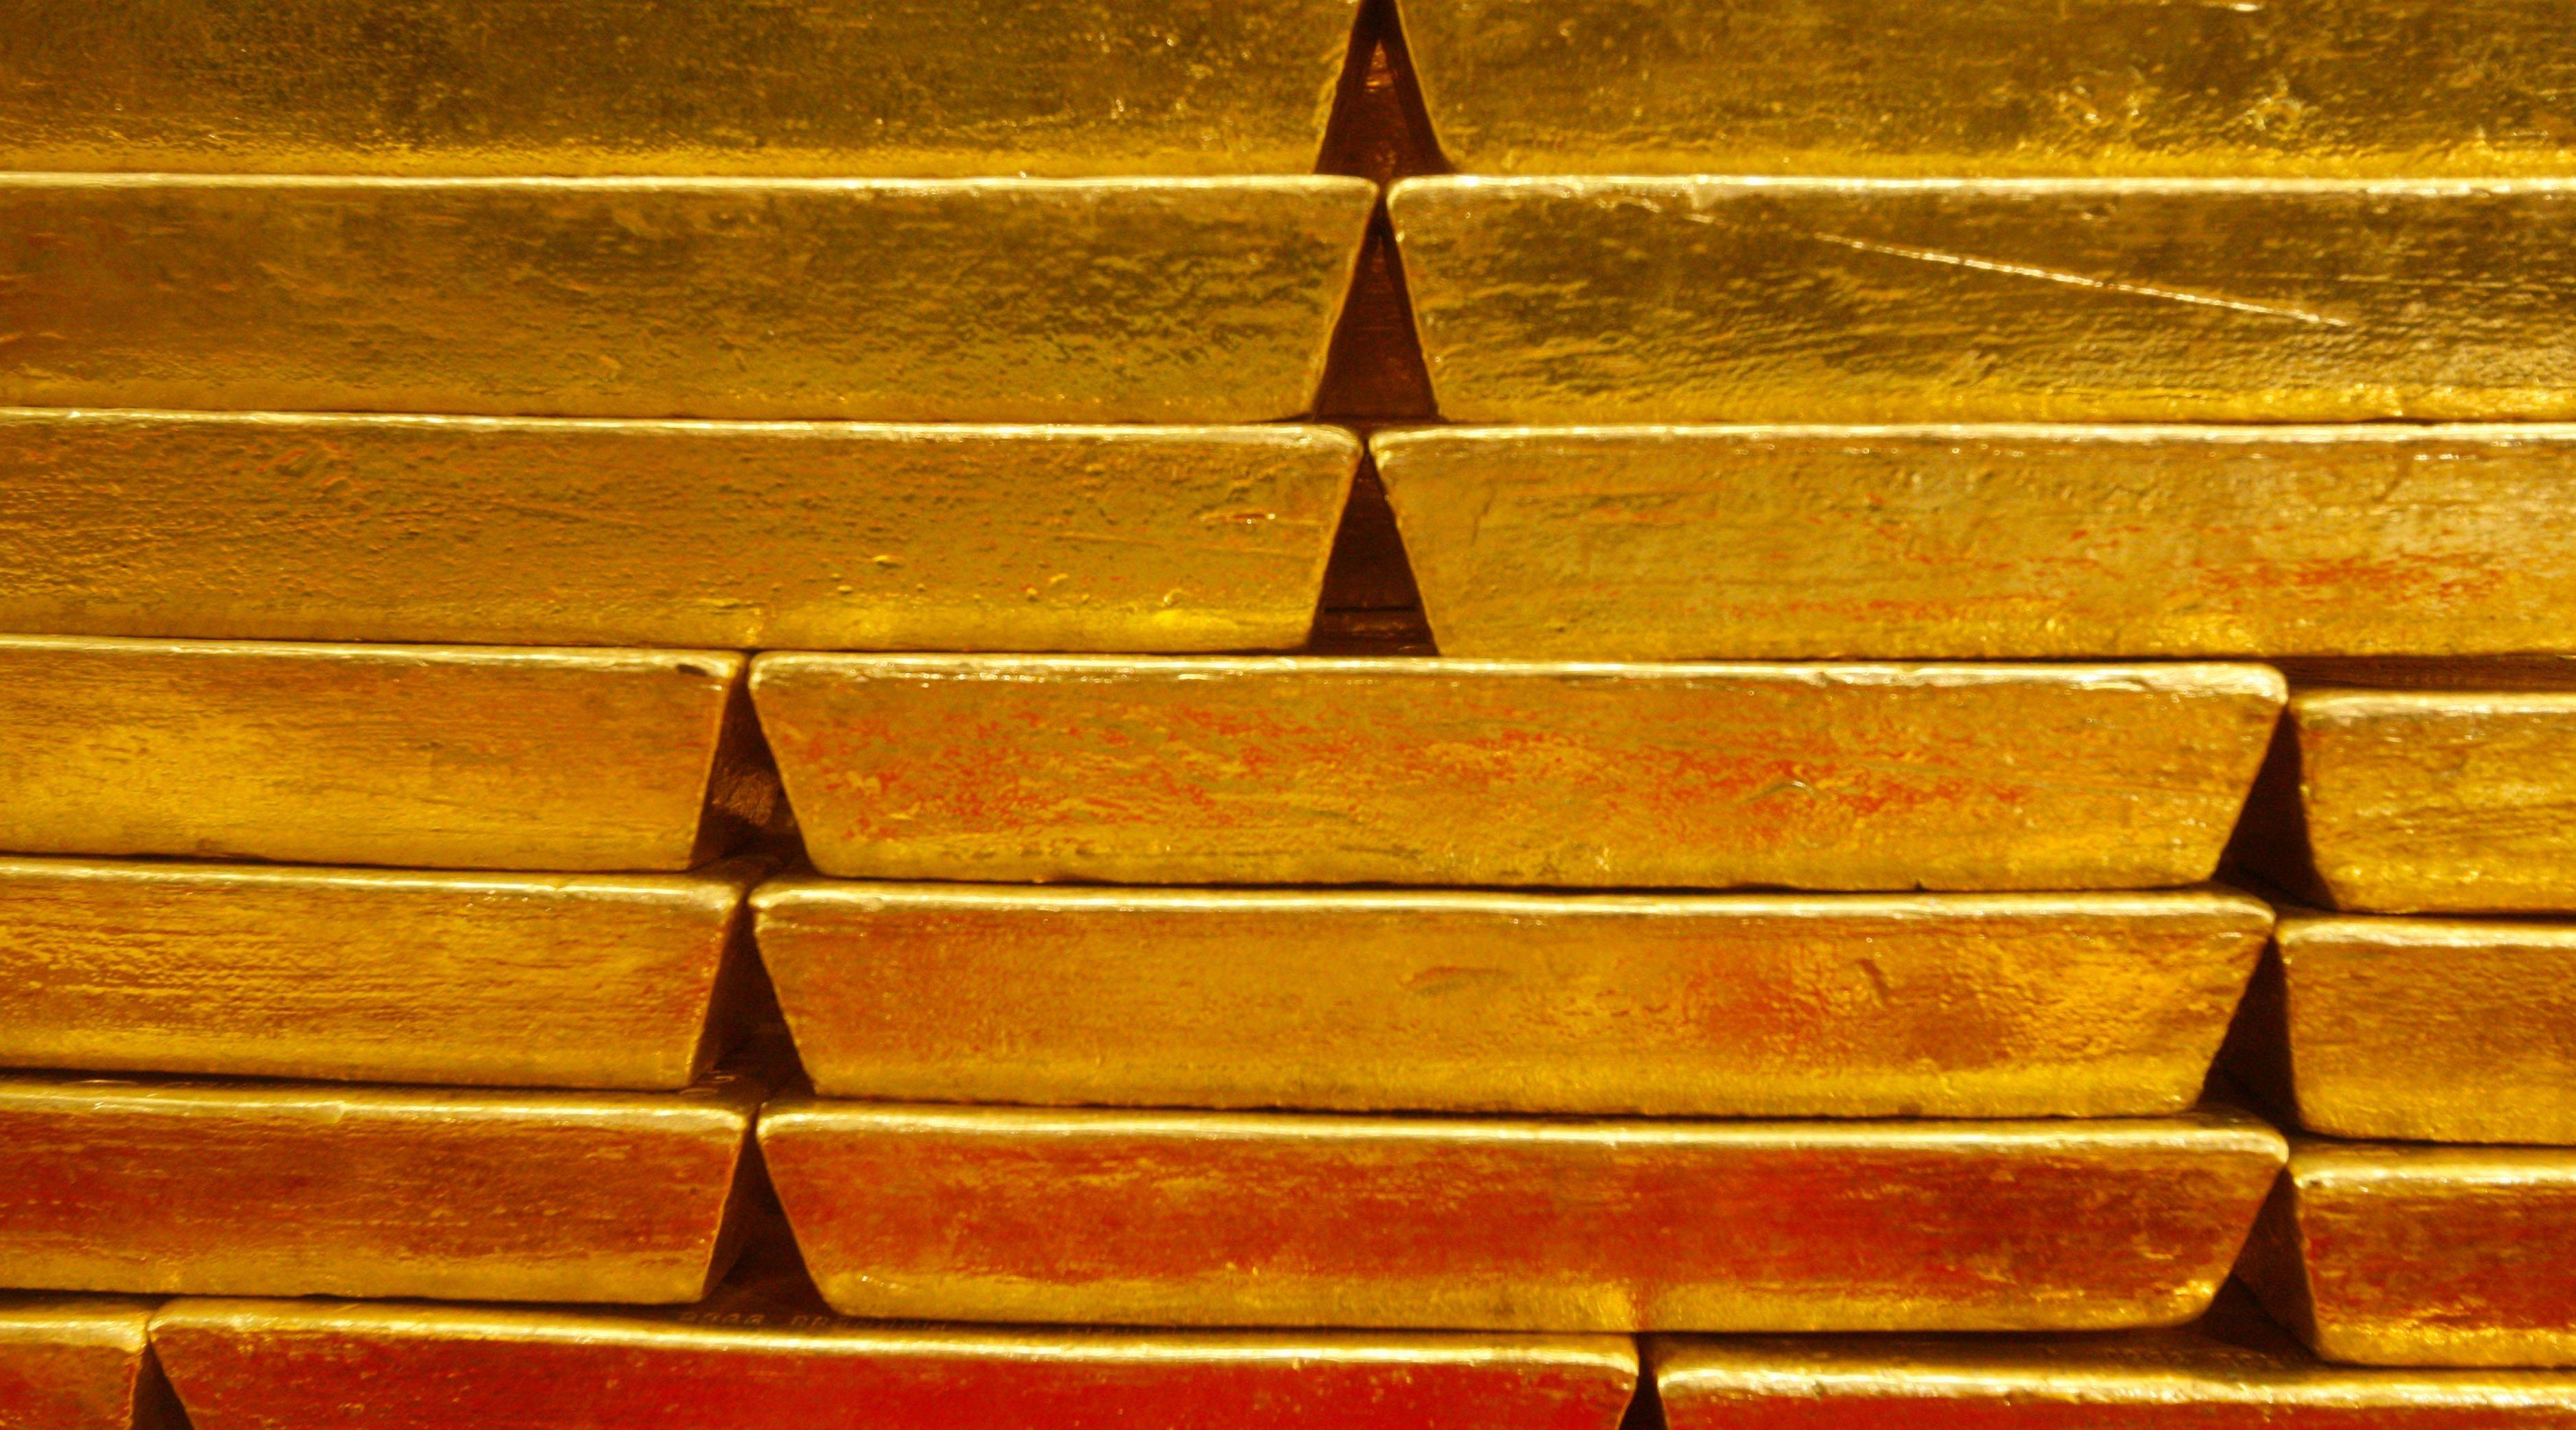 Investors anxious about the uncertain global economy continued to snap up gold. �Gold has become the portfolio antidote for the global financial crisis,� James McDonald, chief investment strategist at Northern Trust Corp., the Chicago-based custody bank and money manager, said in an interview.